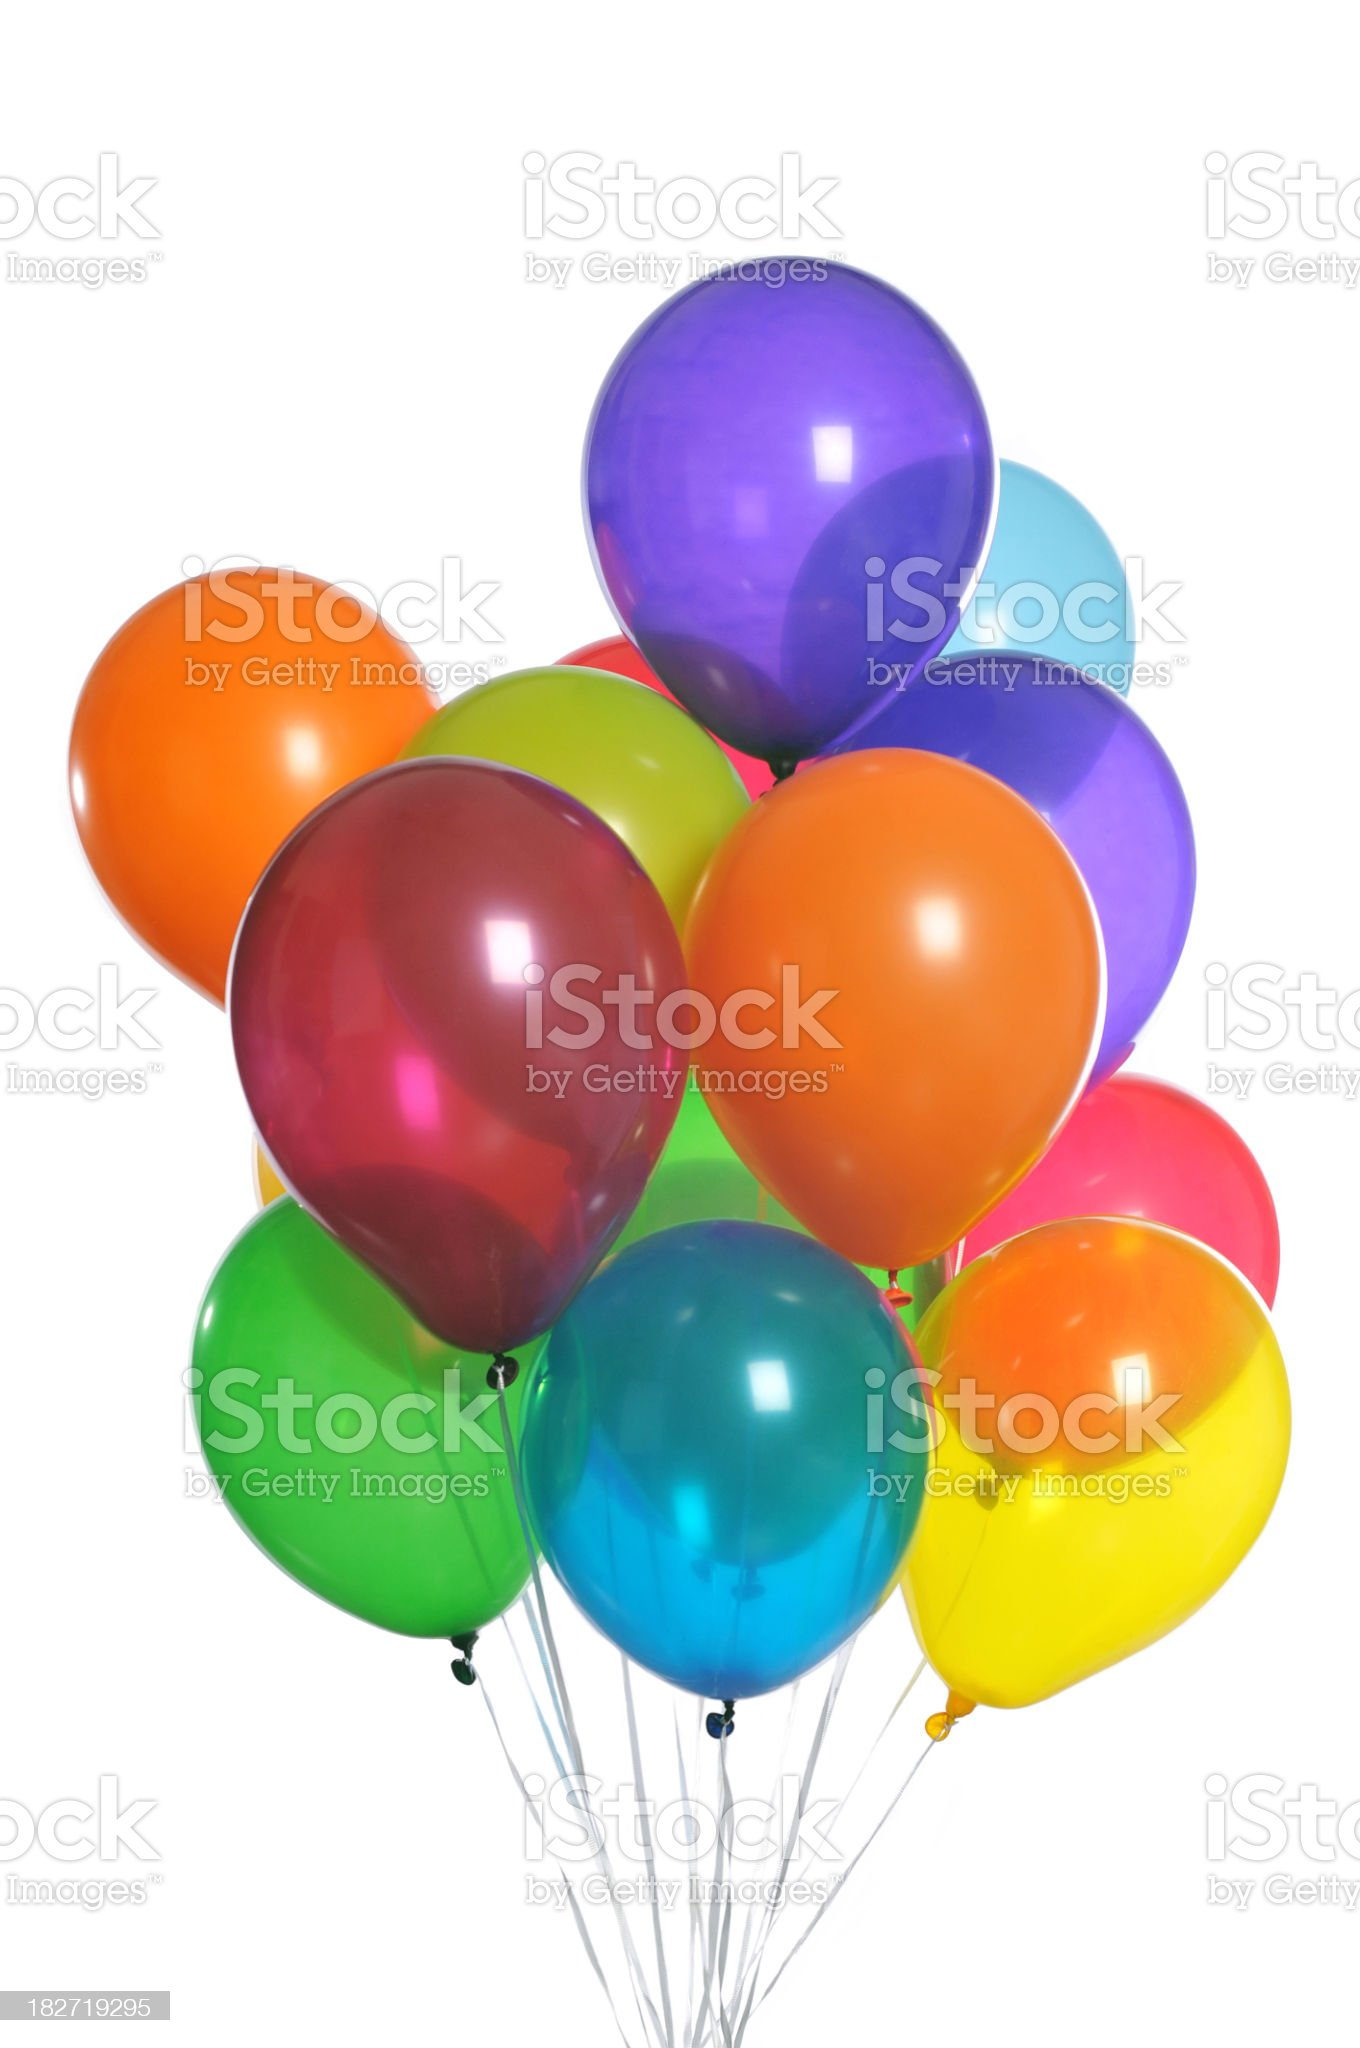 Multicolored Bunch of Stringed Balloons on White Background royalty-free stock photo